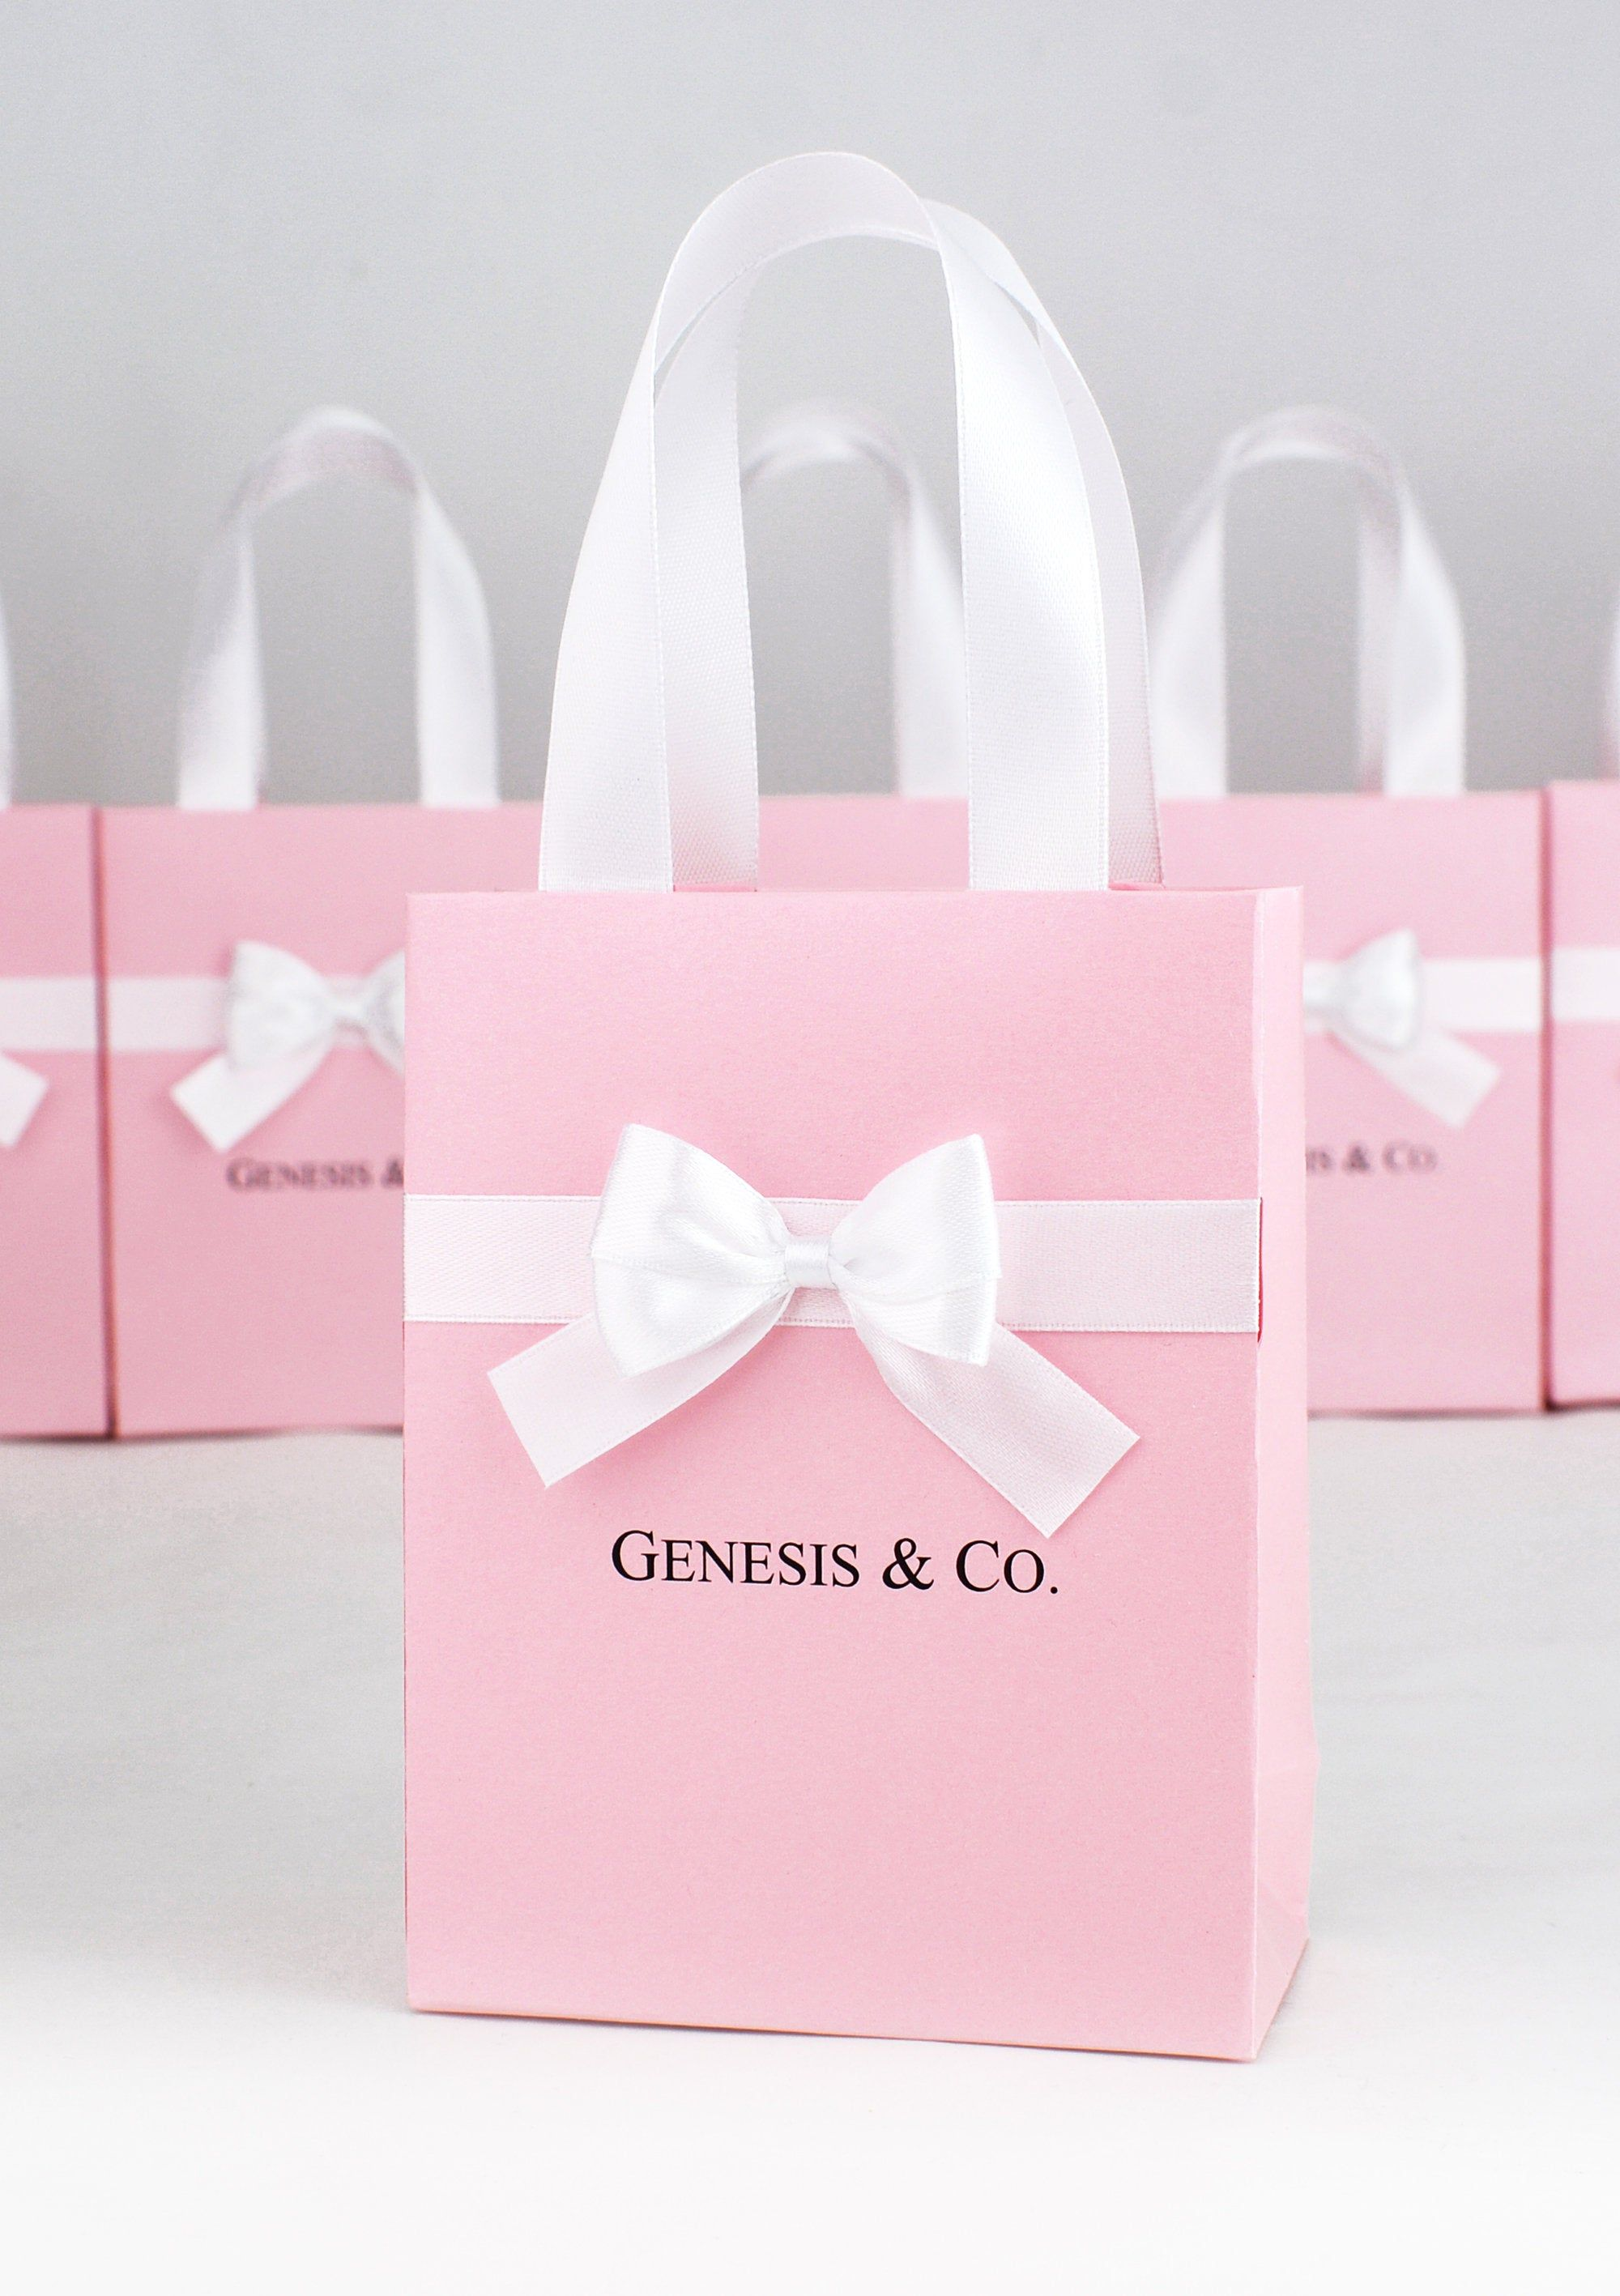 Baby & Co. gift bag with satin ribbon handles, bow and custom name, Elegant Baby Shower favor bags for guests, Breakfast at Tiffany party